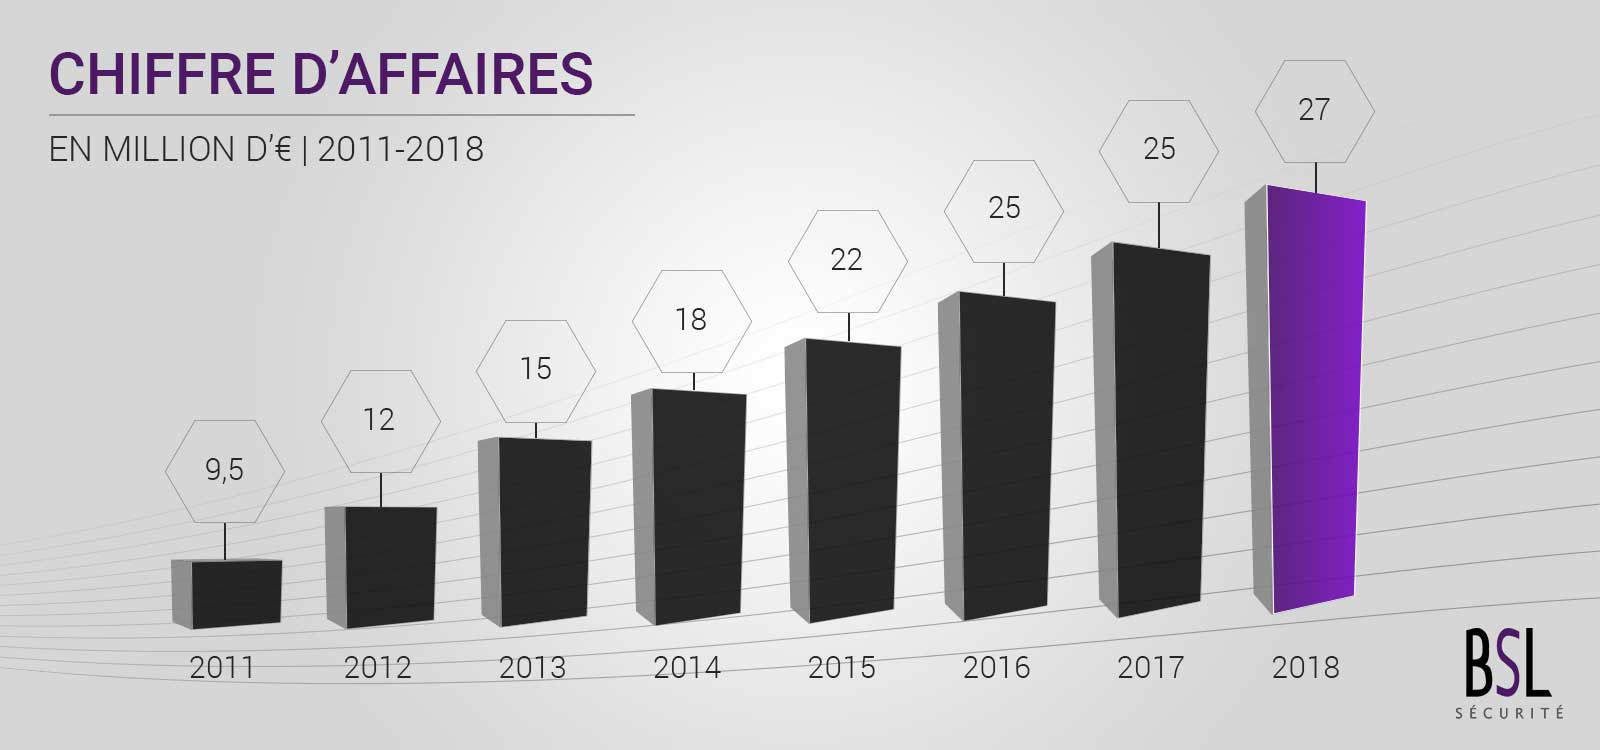 chiffre-d-affairegraph-2018-groupe-bsl-securite